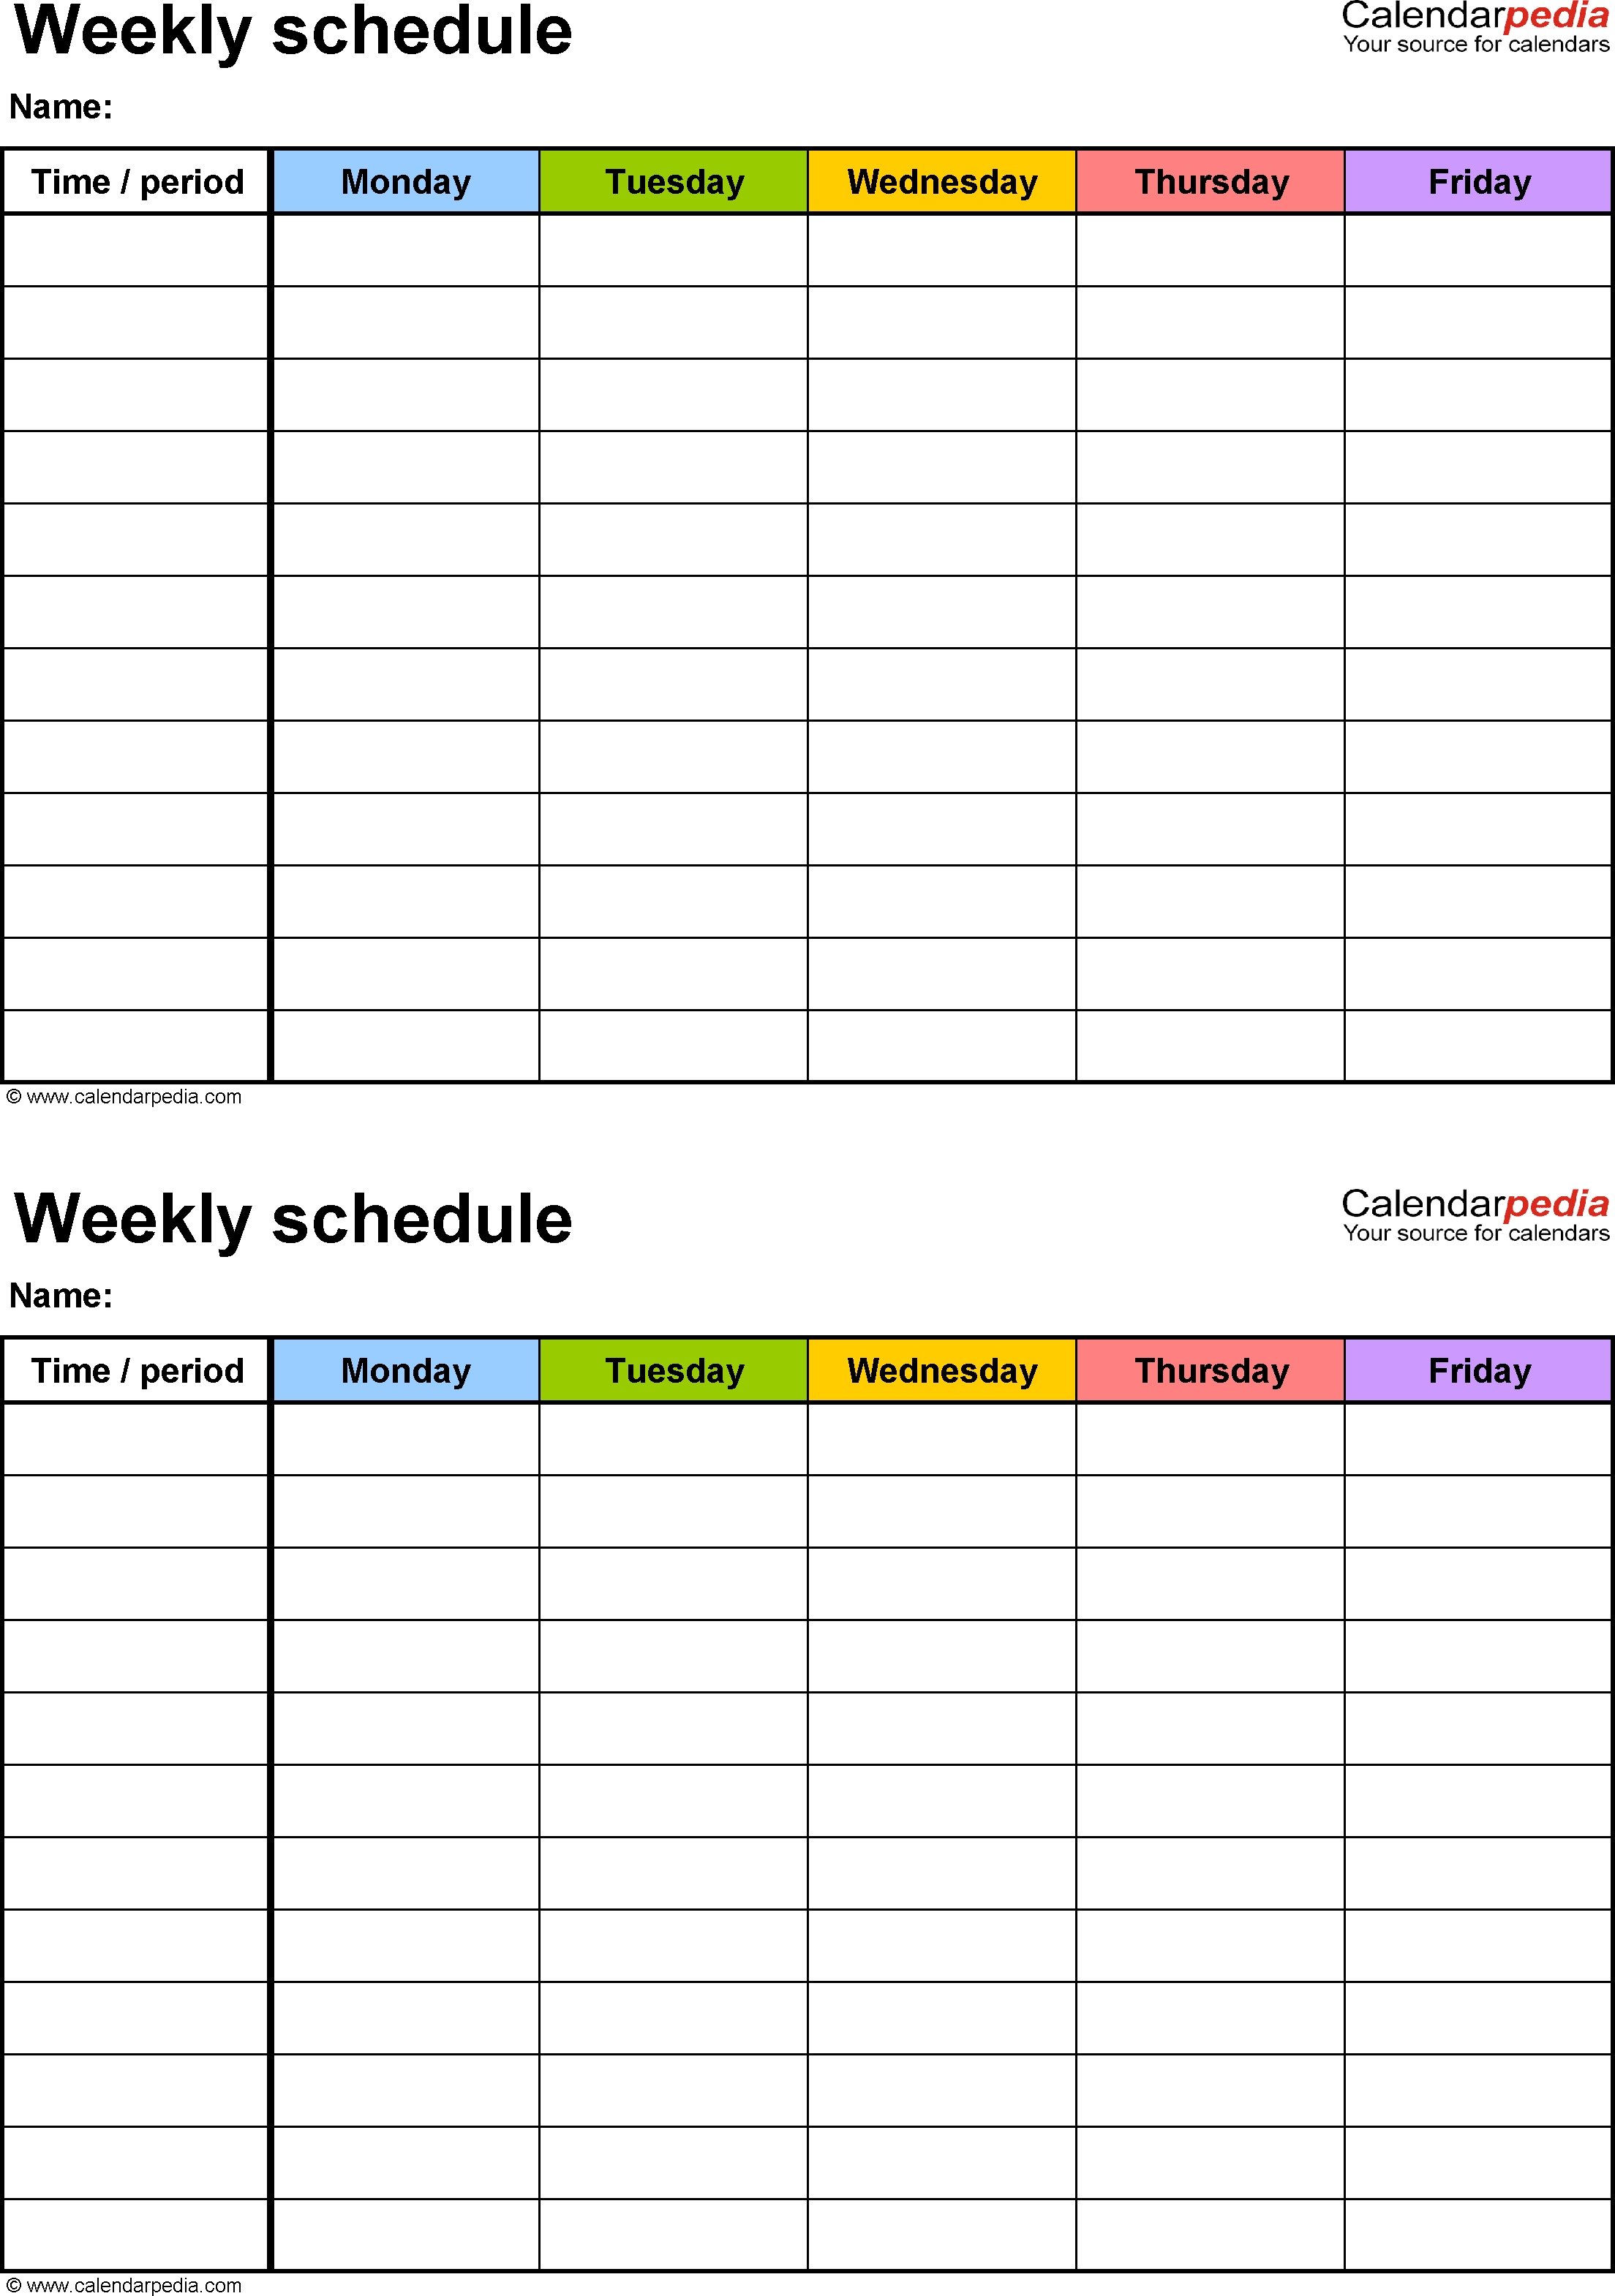 Free Weekly Schedule Templates For Word - 18 Templates Free Printable 2 Week Calendar Template